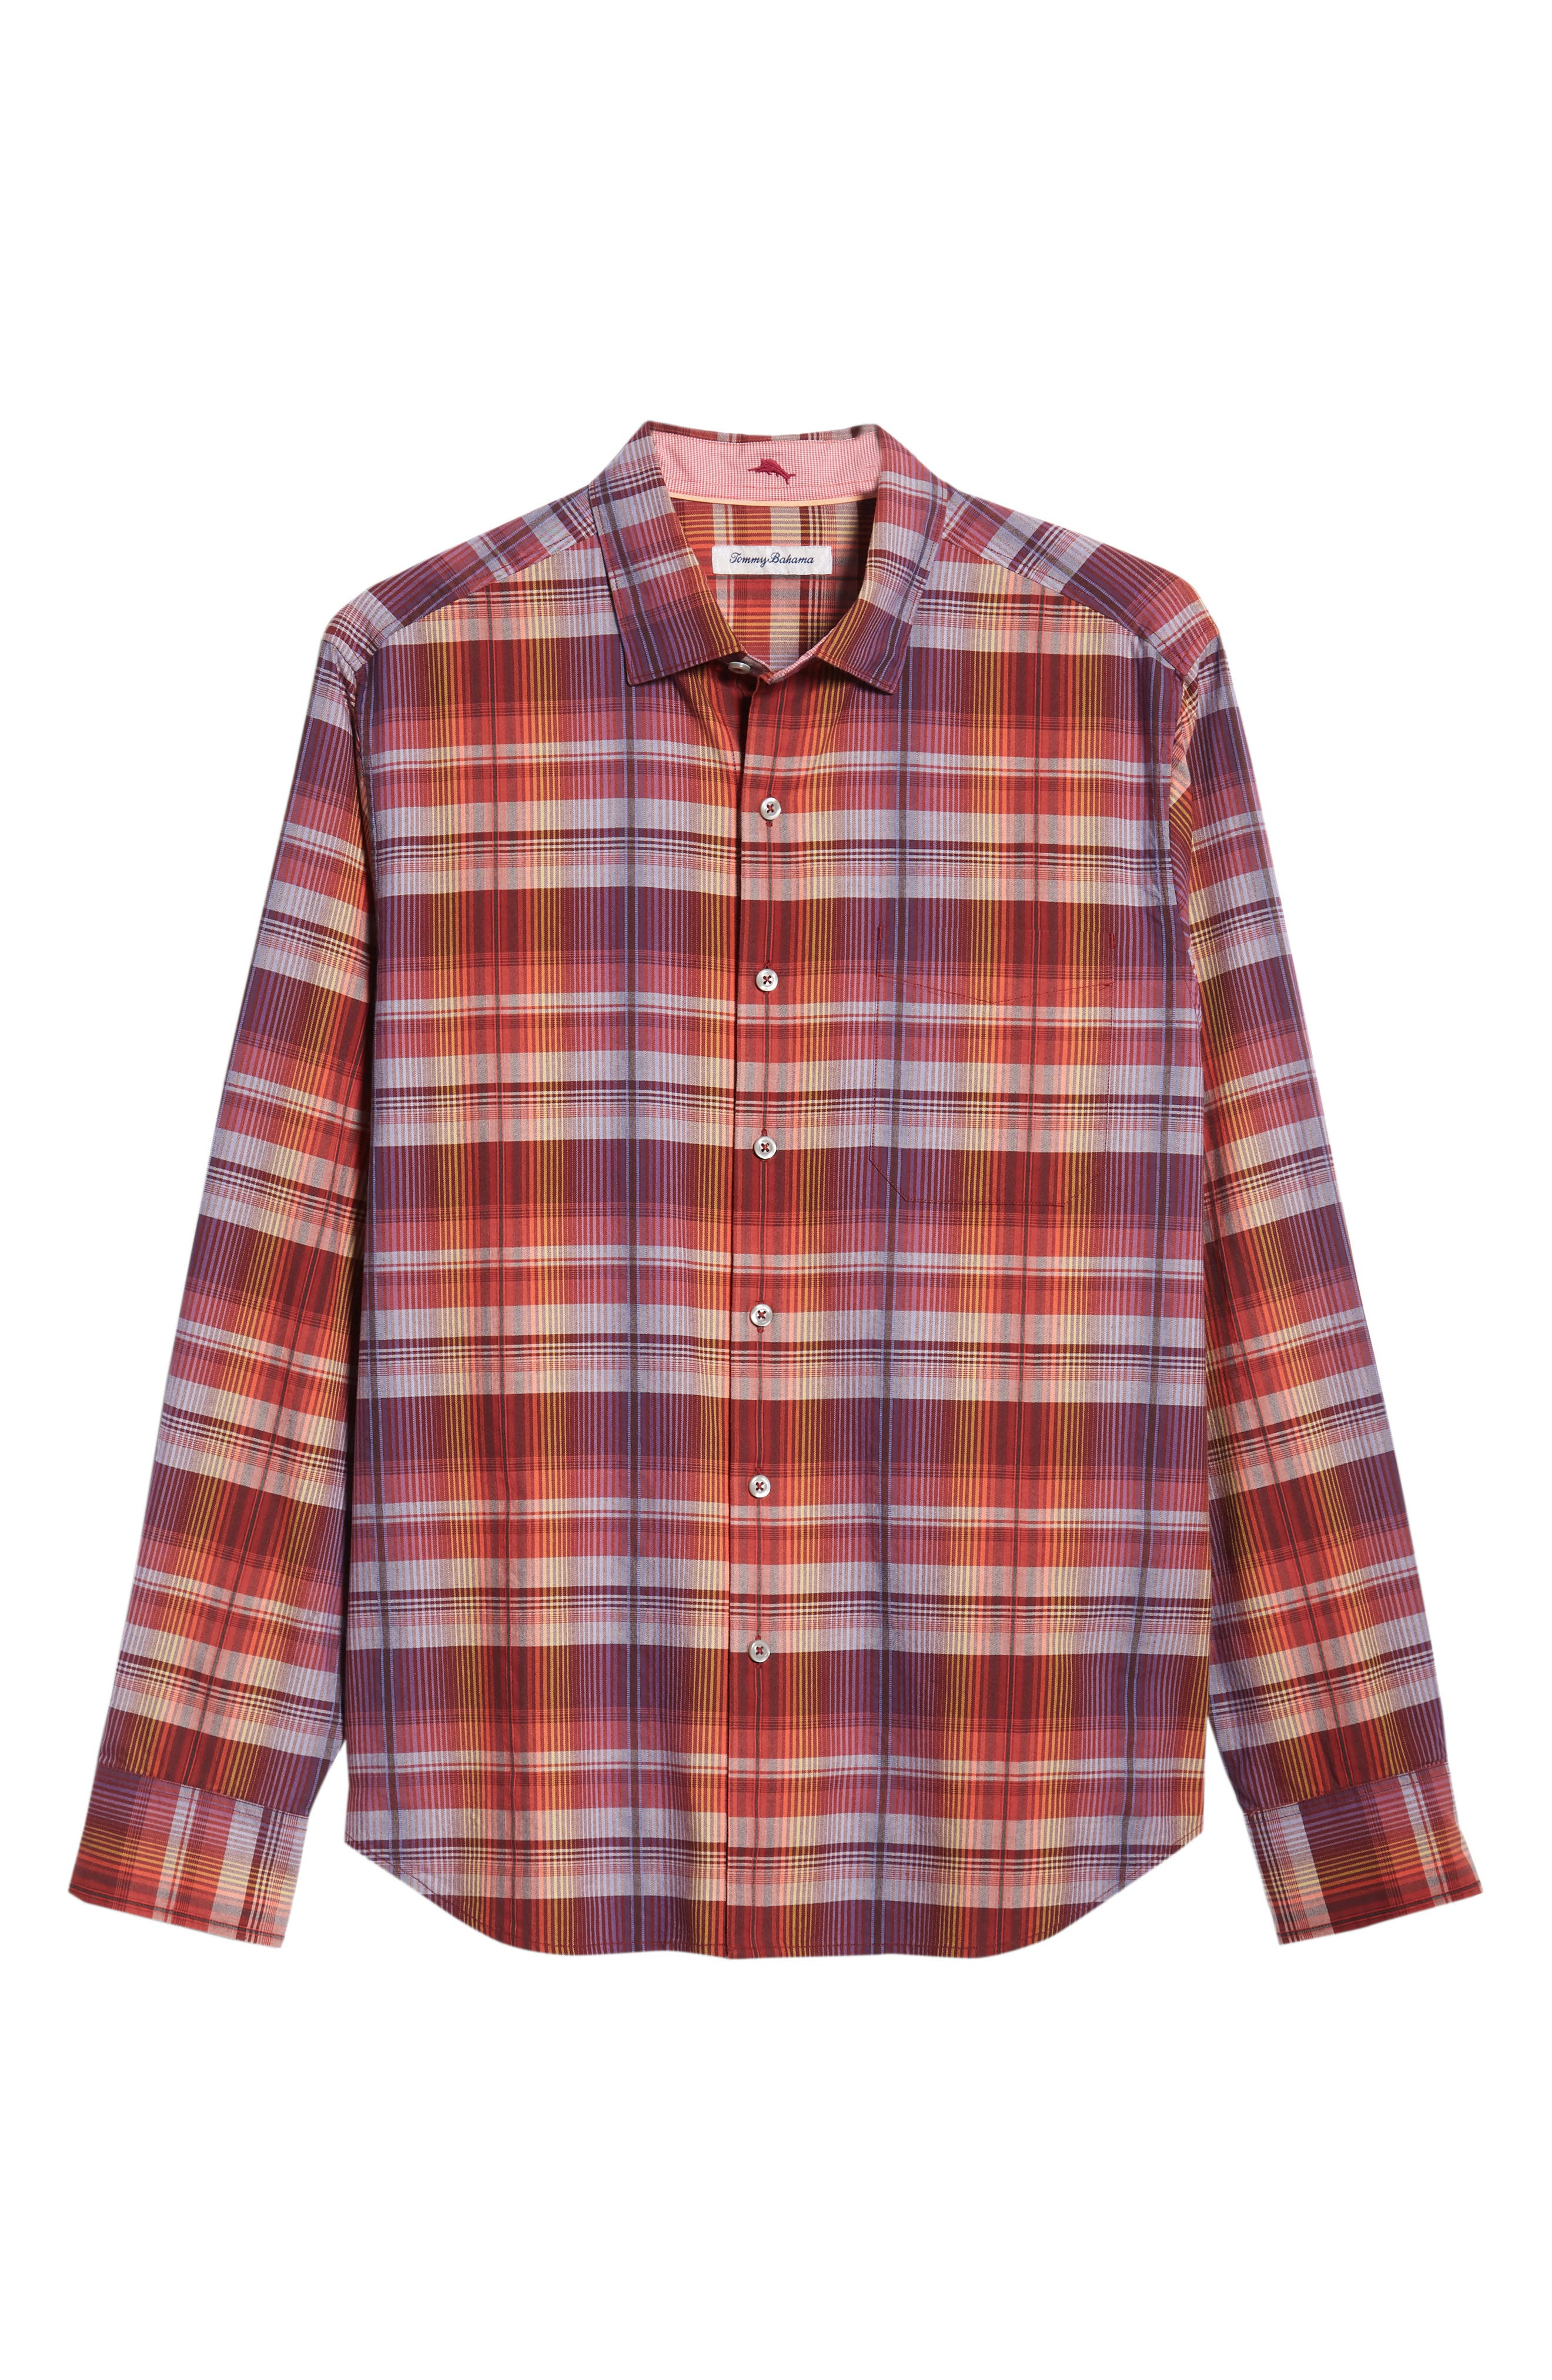 Puerto Prism Plaid Sport Shirt,                             Alternate thumbnail 5, color,                             SCOOTER RED